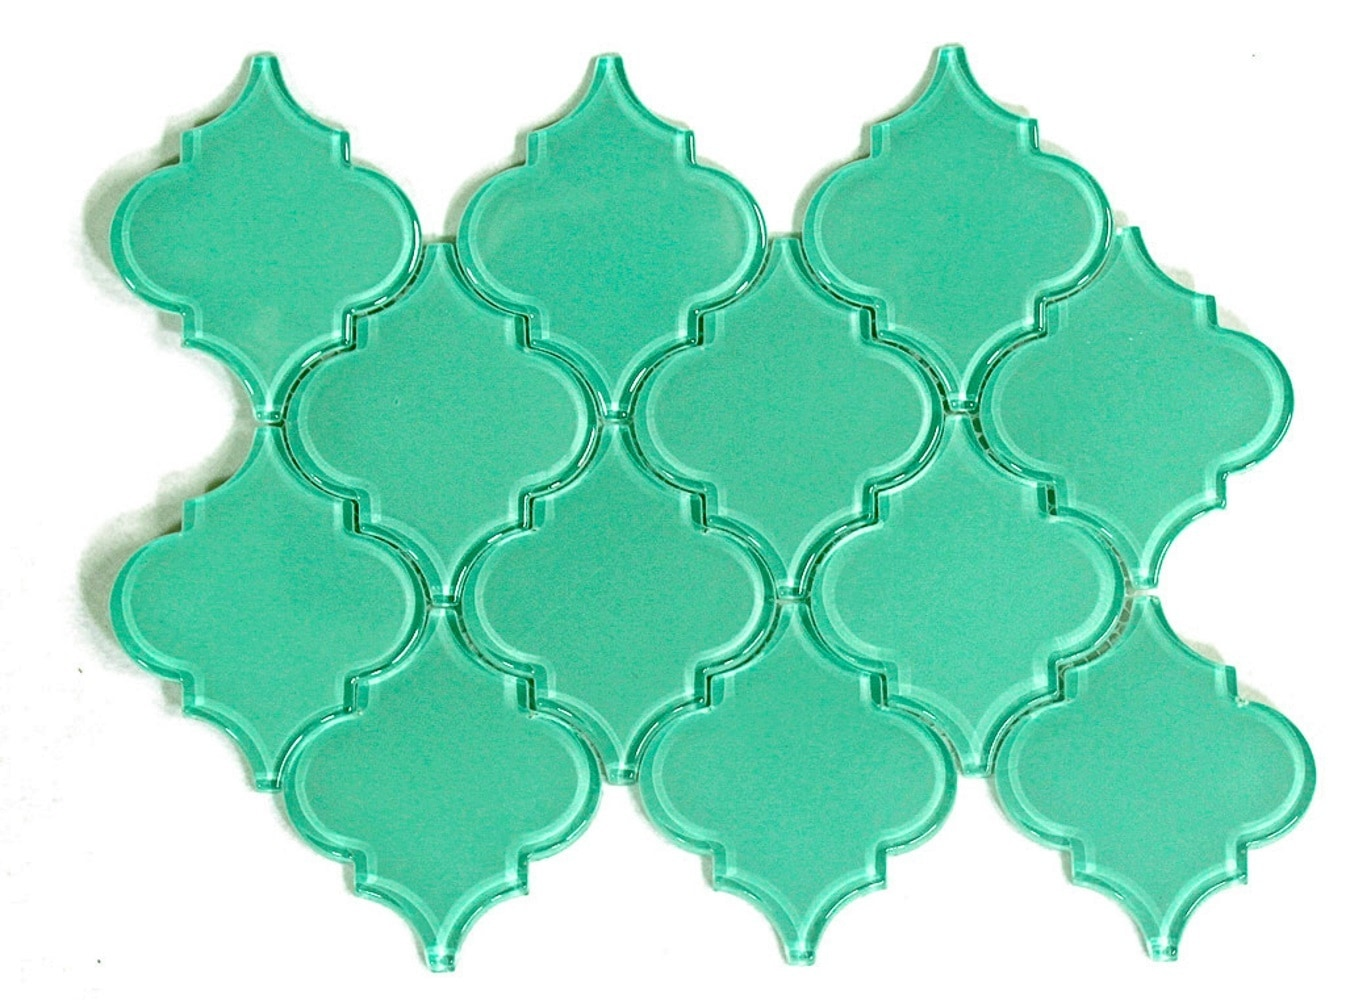 Glass Mosaic / 12 x 12 x 0.31 inches / Glossy Lantern Glass Mosaic Tile In Light Teal 0